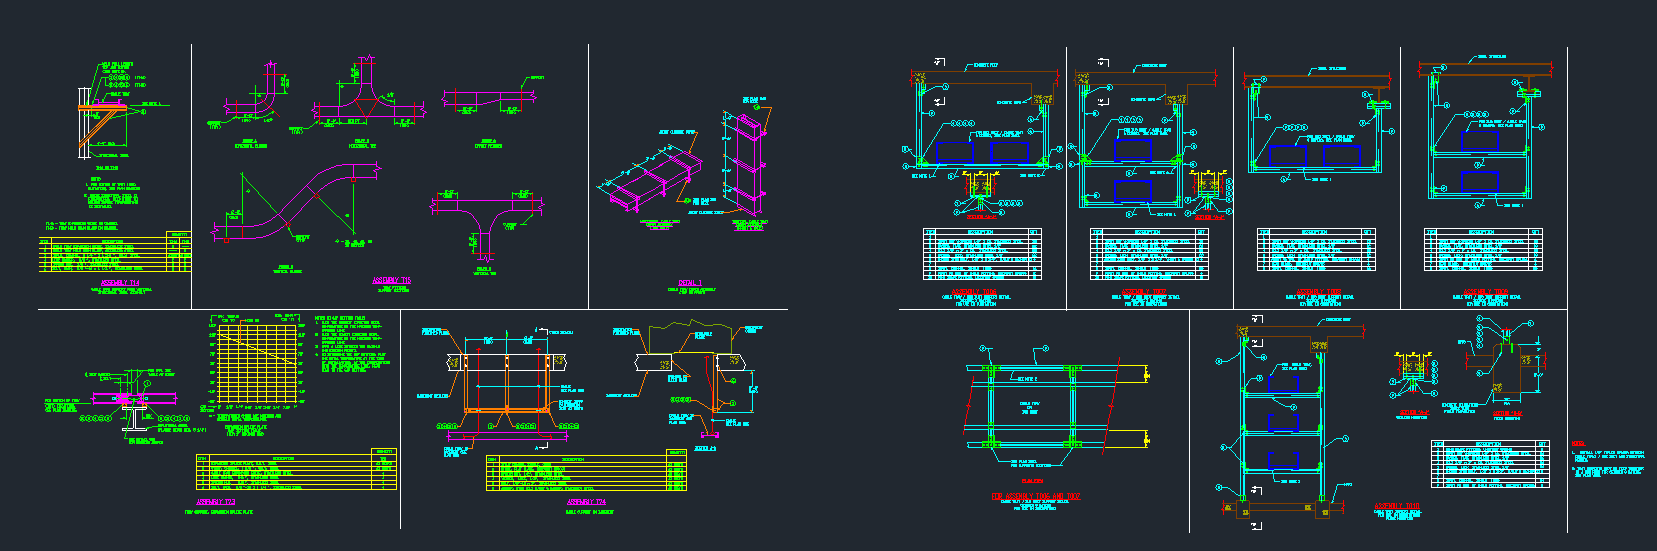 Electrical Cable Tray Installation Details - CAD Files, DWG files, Plans  and Details